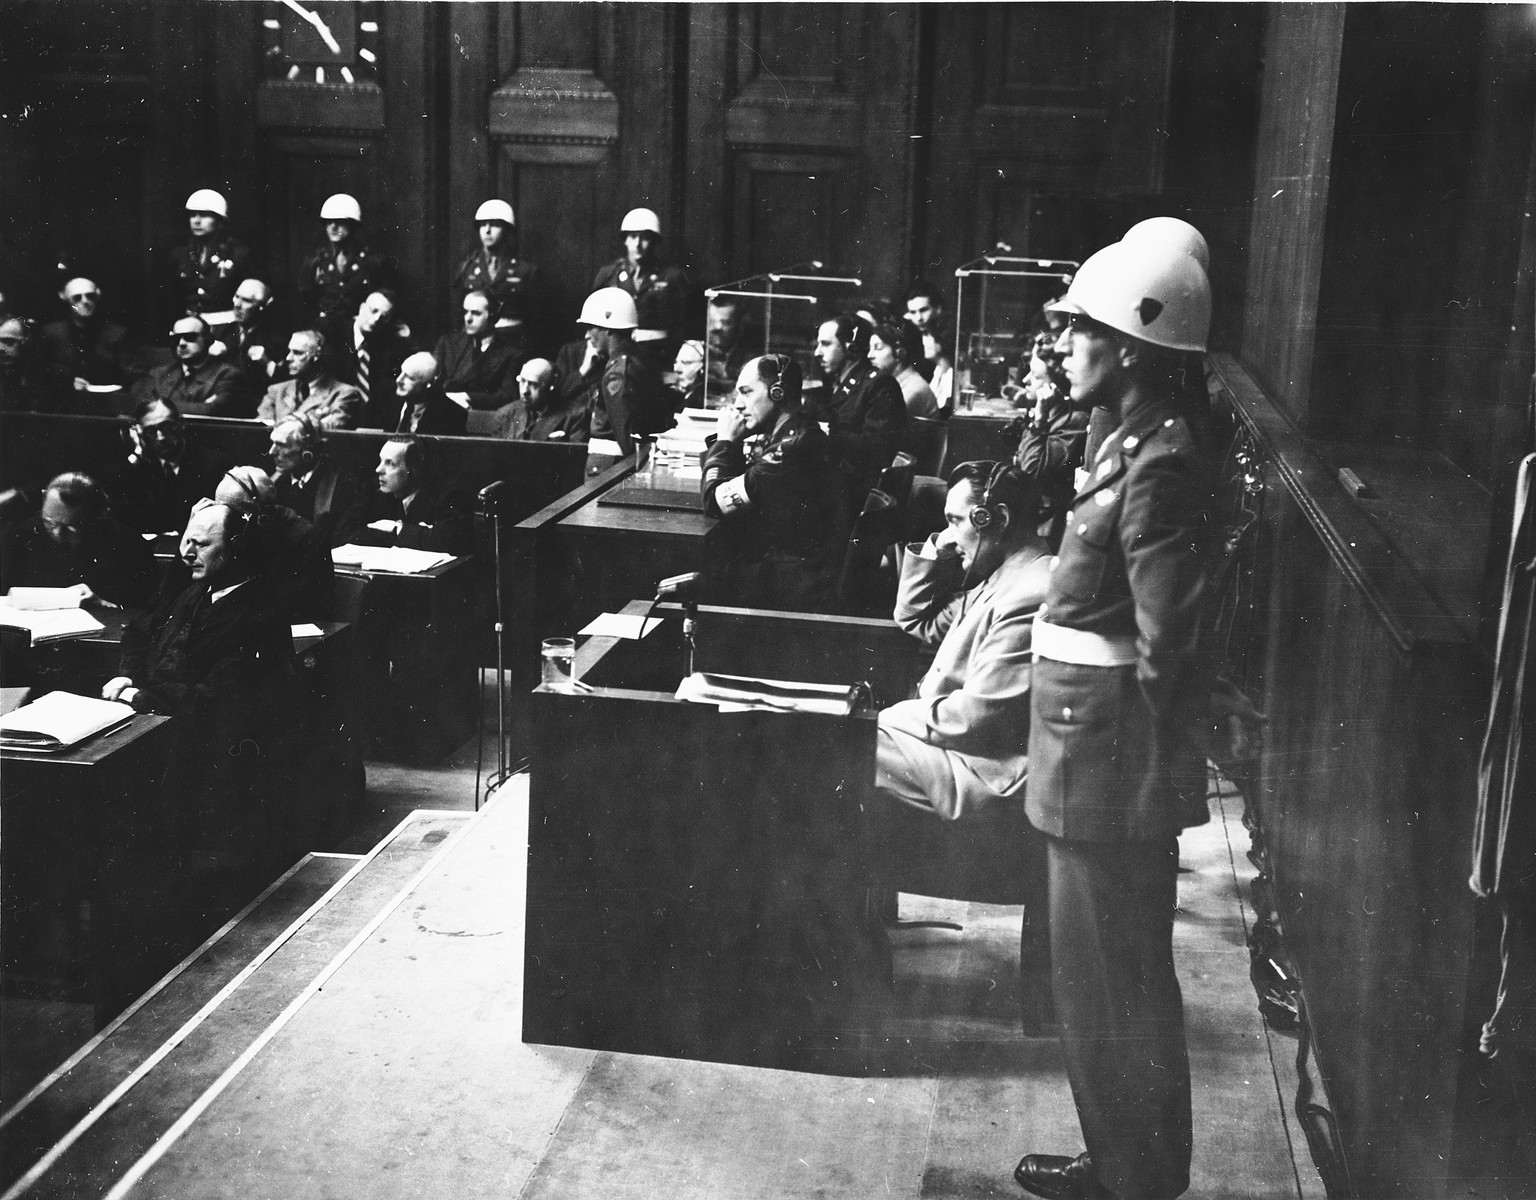 Hermann Goering sits in the witness stand with American Military policemen on either side during the International Military Tribunal in Nuremberg.  Standing in front is the donor, Albert Rose, an American military policeman.